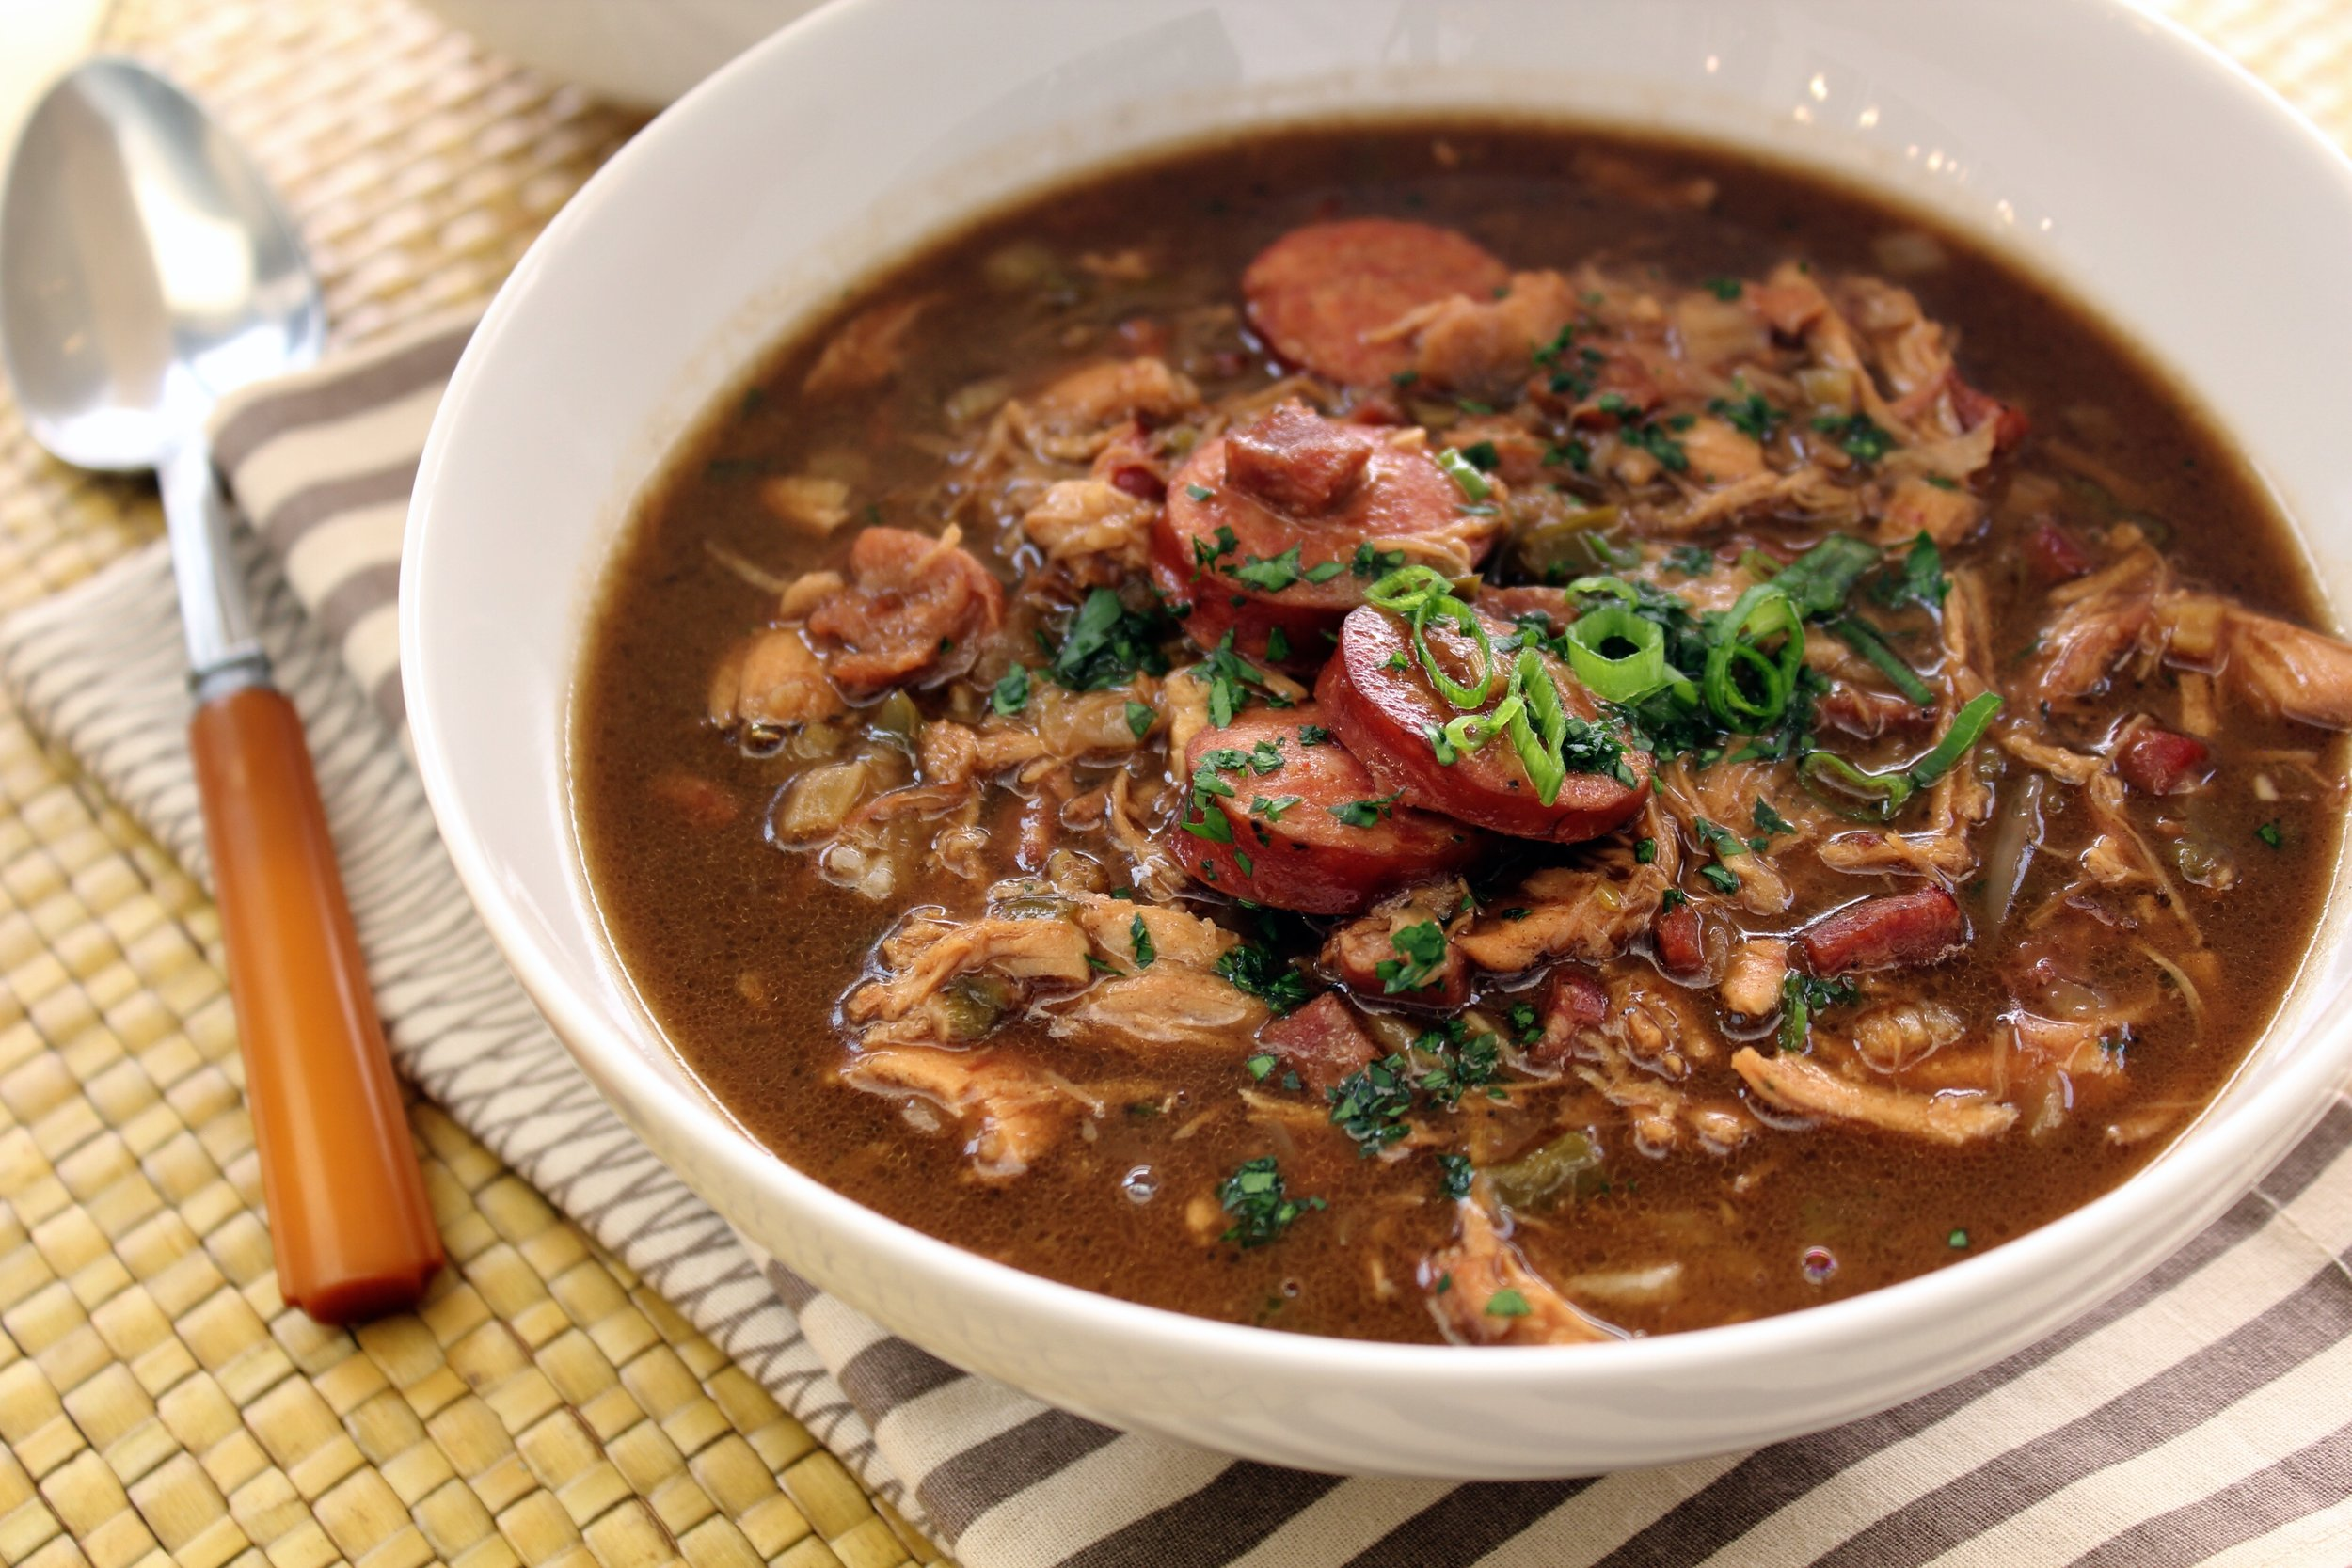 Turkey bone gumbo 2.JPG